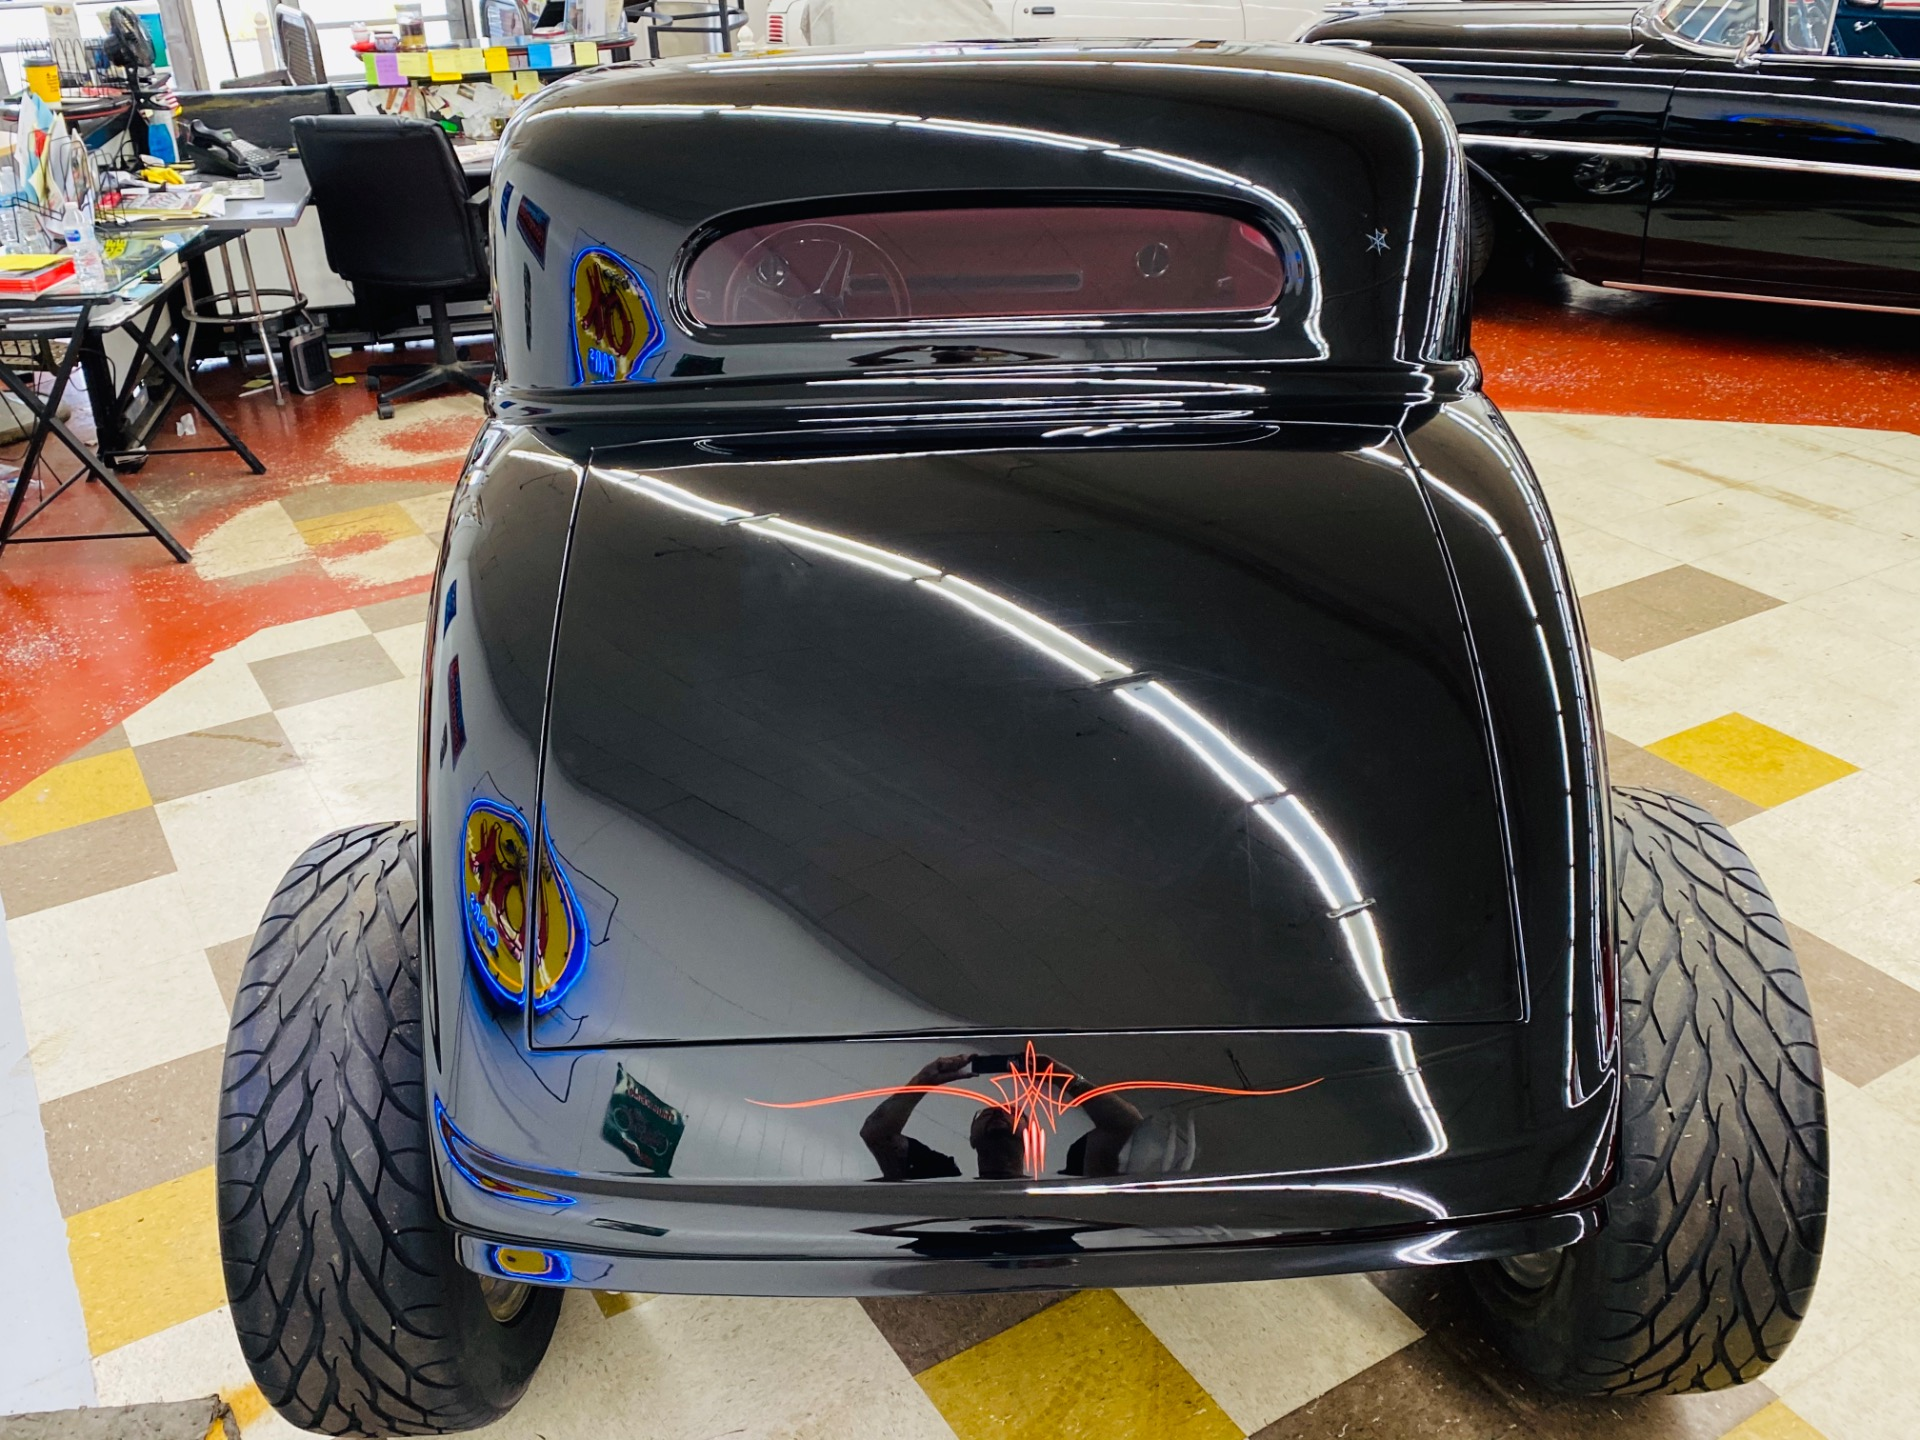 Used 1933 Ford Hot Rod / Street Rod -PRICE DROPPED!!!- LS1 V8 - PAUL ATKINS CUSTOM INTERIOR- SEE VIDEO | Mundelein, IL